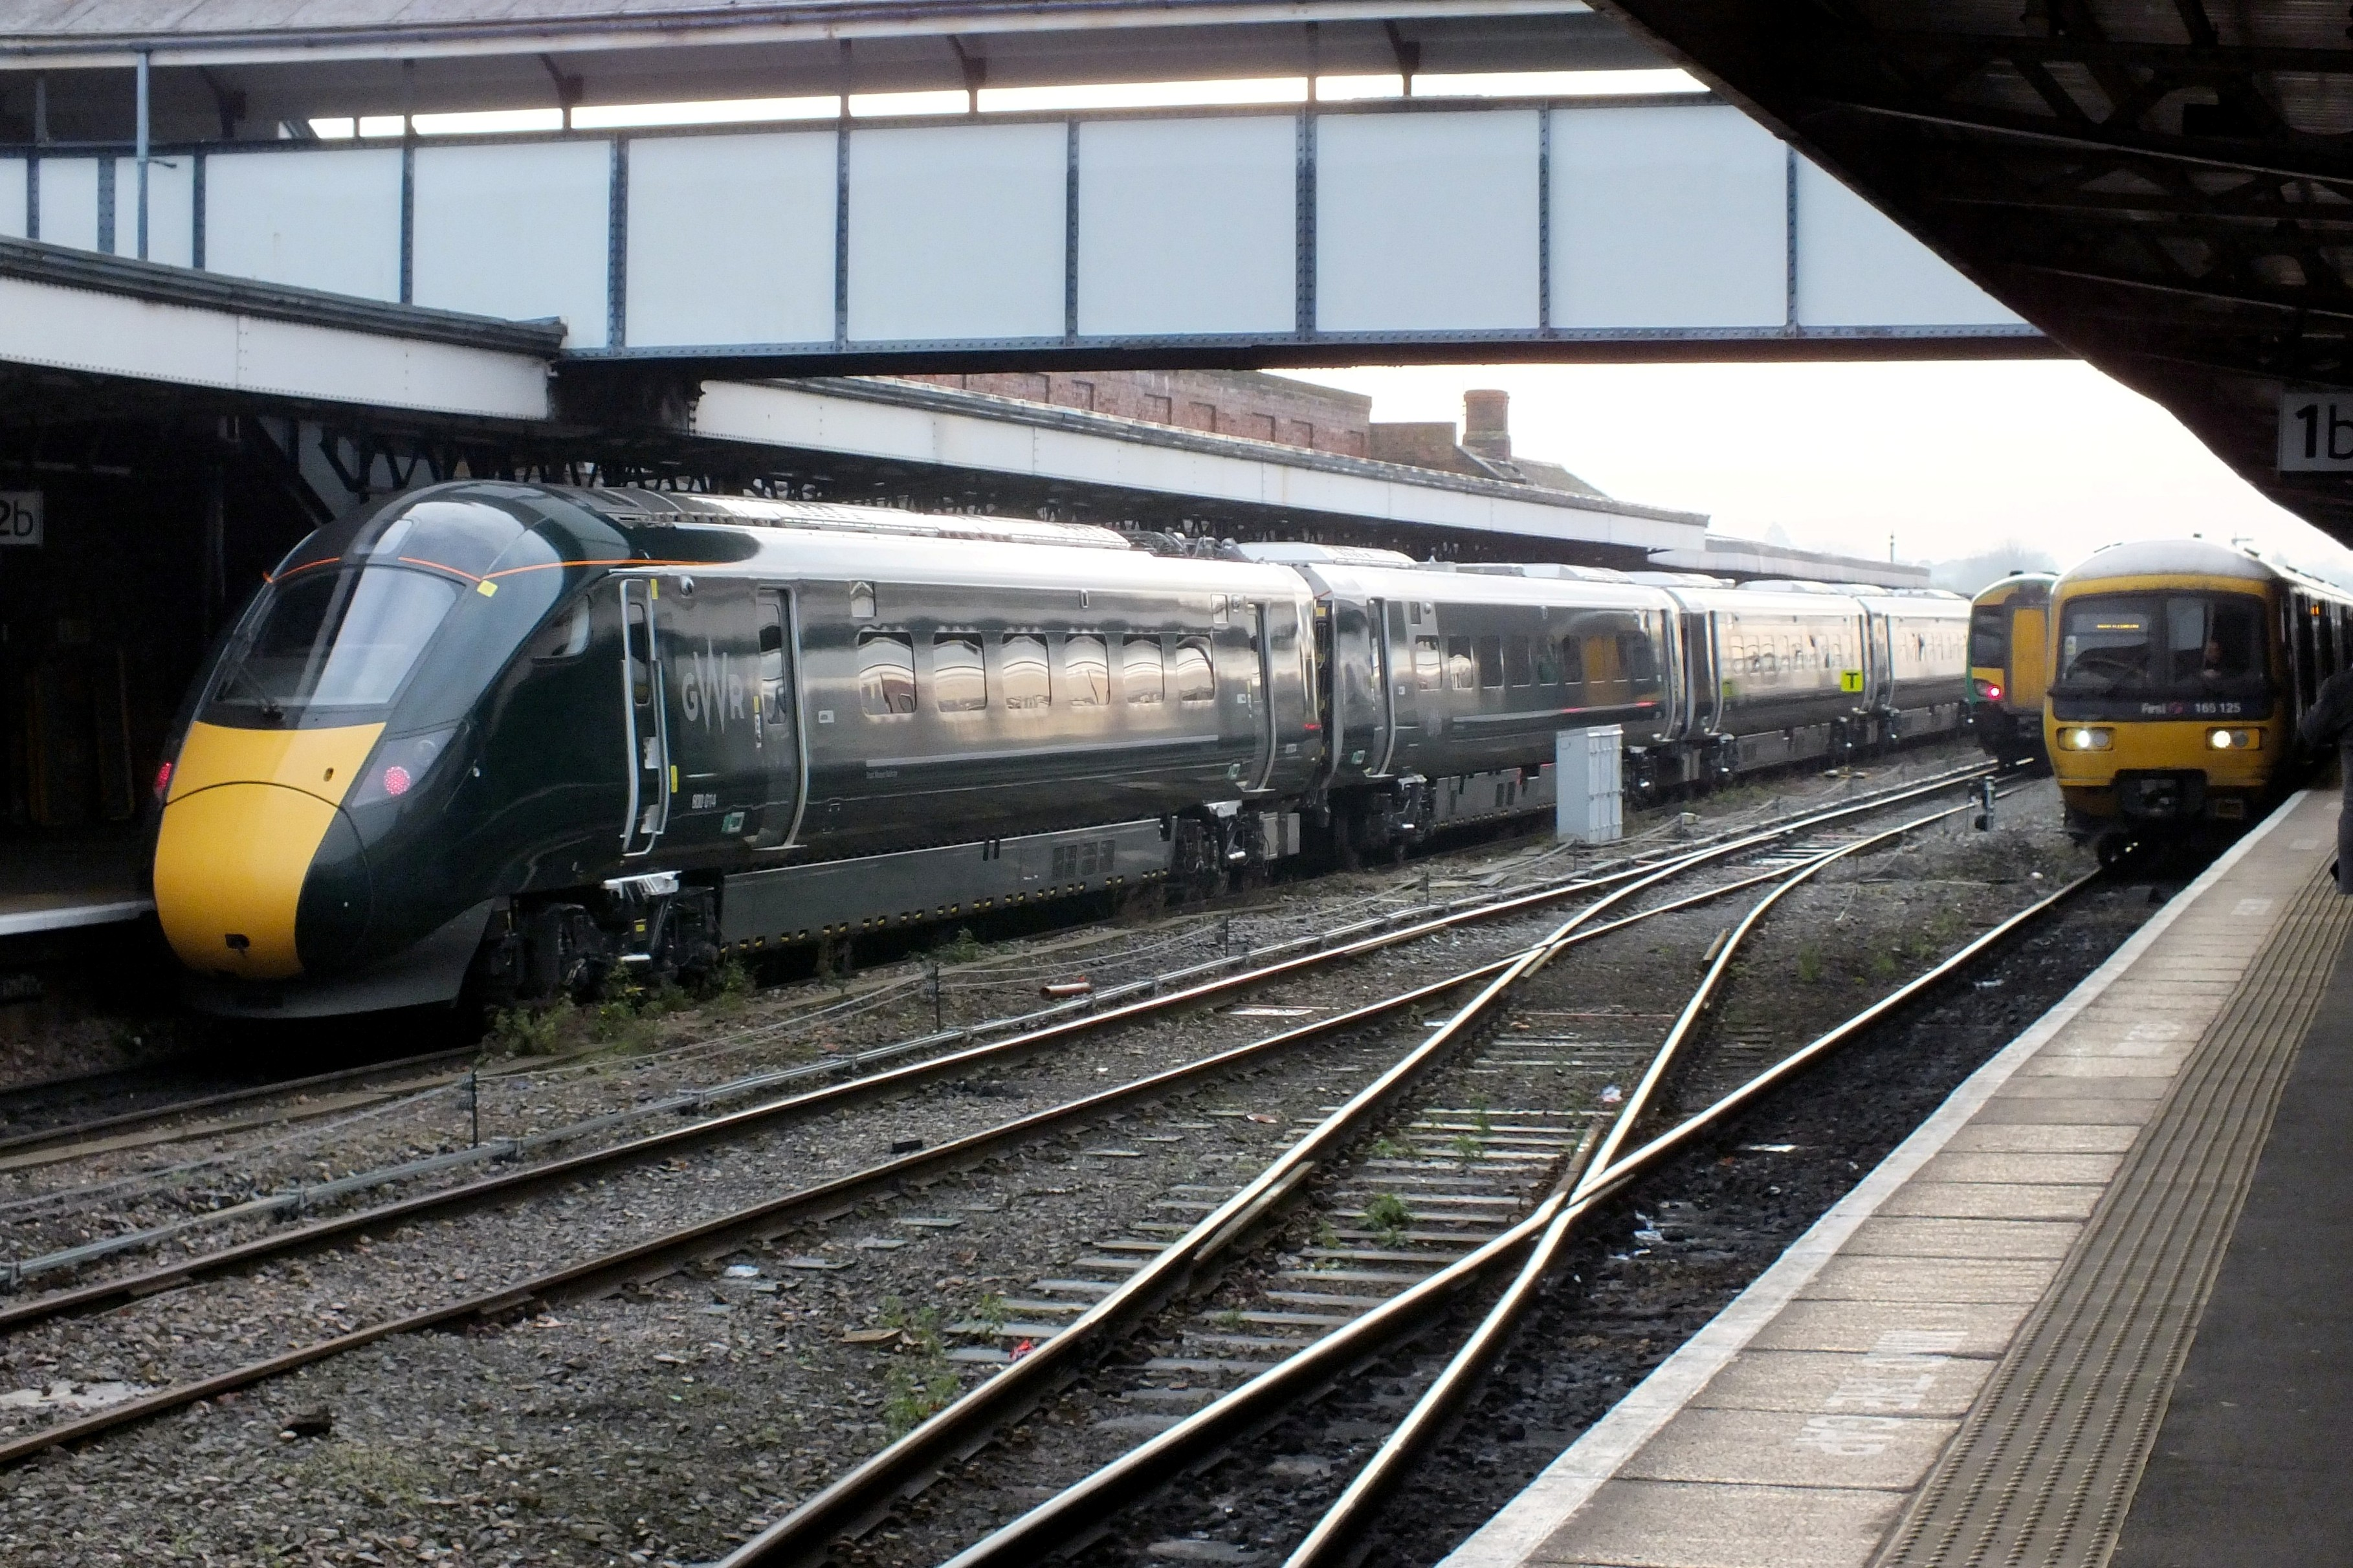 19 December 2017 Shrub Hill 006.jpg